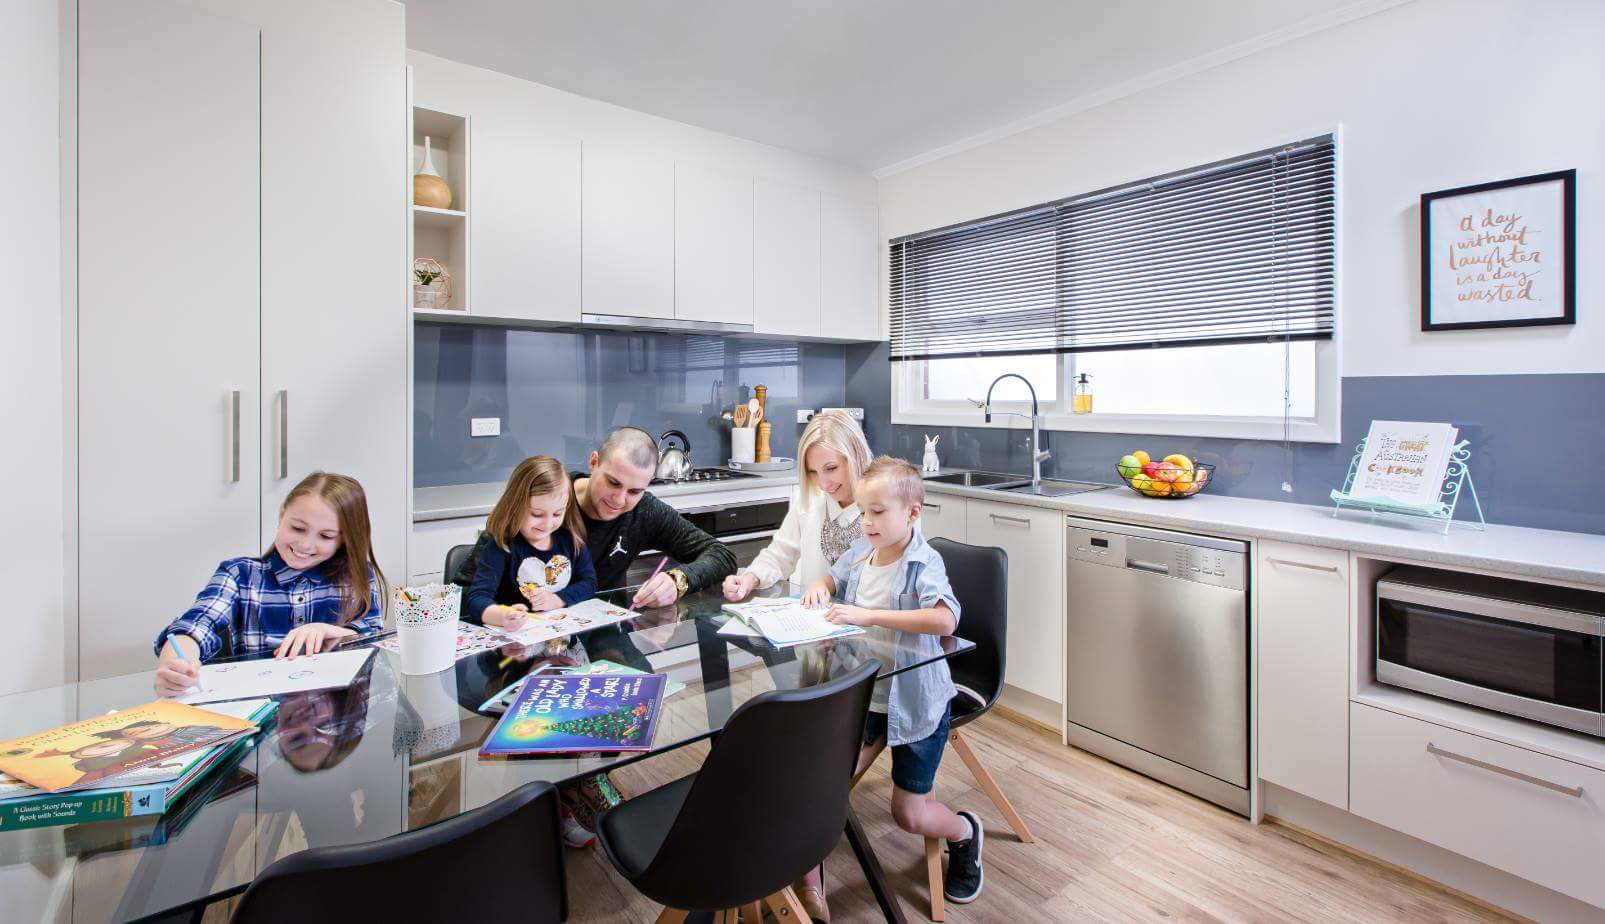 Emma and her family, enjoying the new kitchen |  source